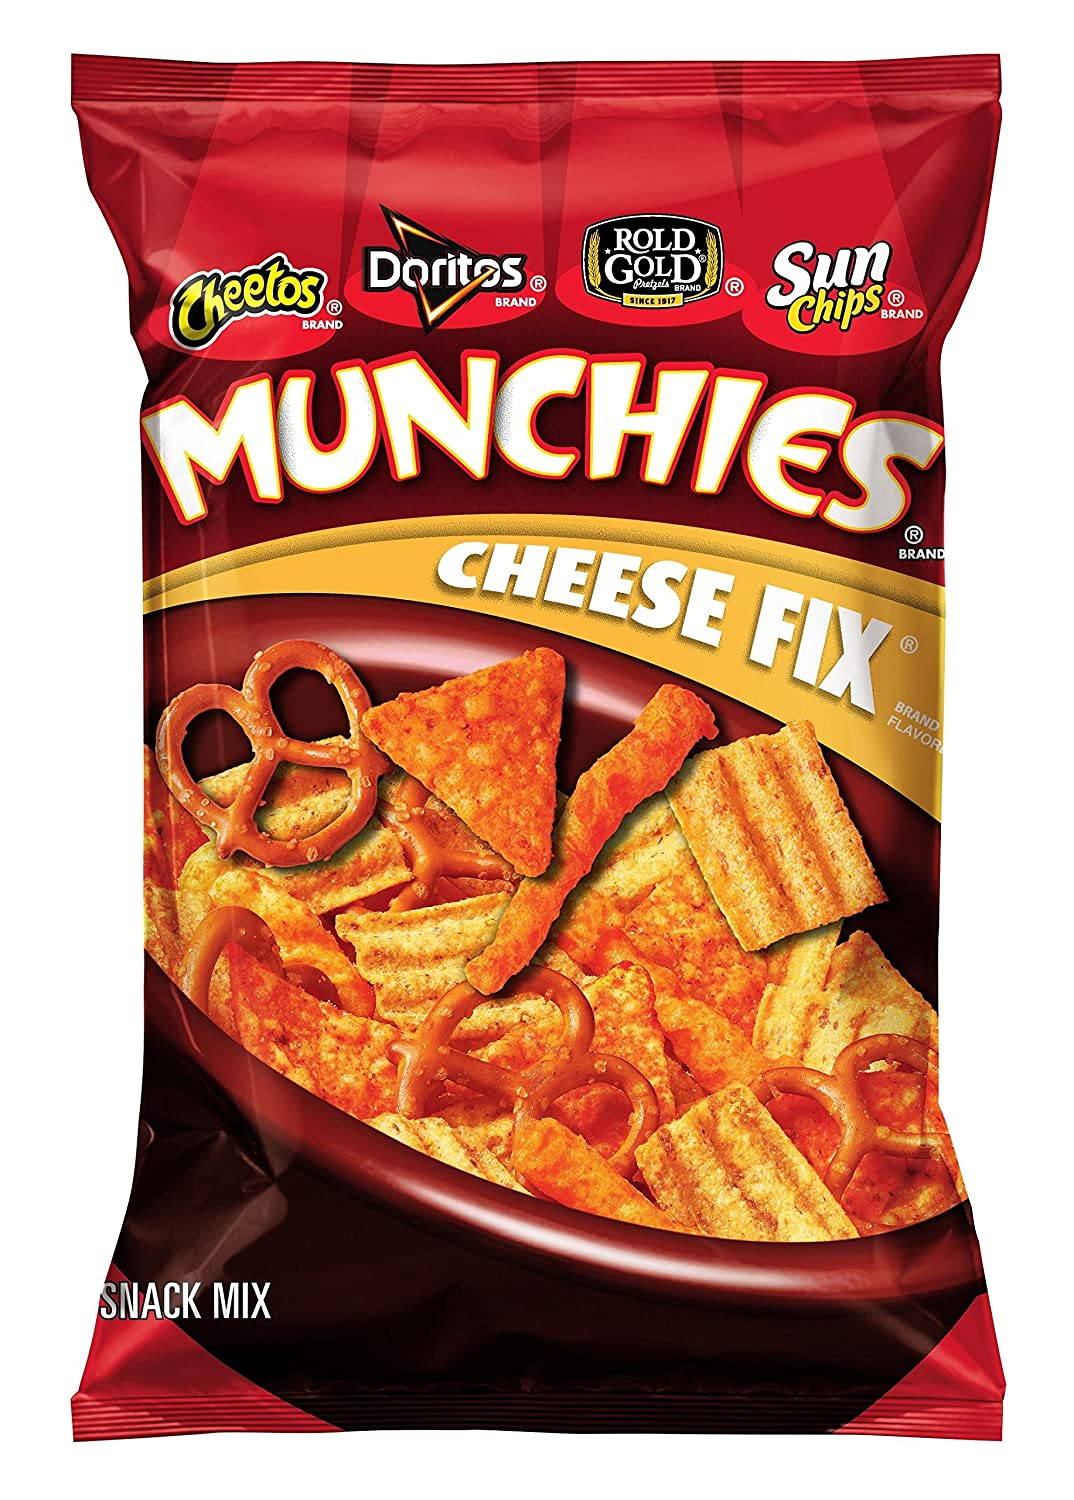 Munchies Cheese Fix